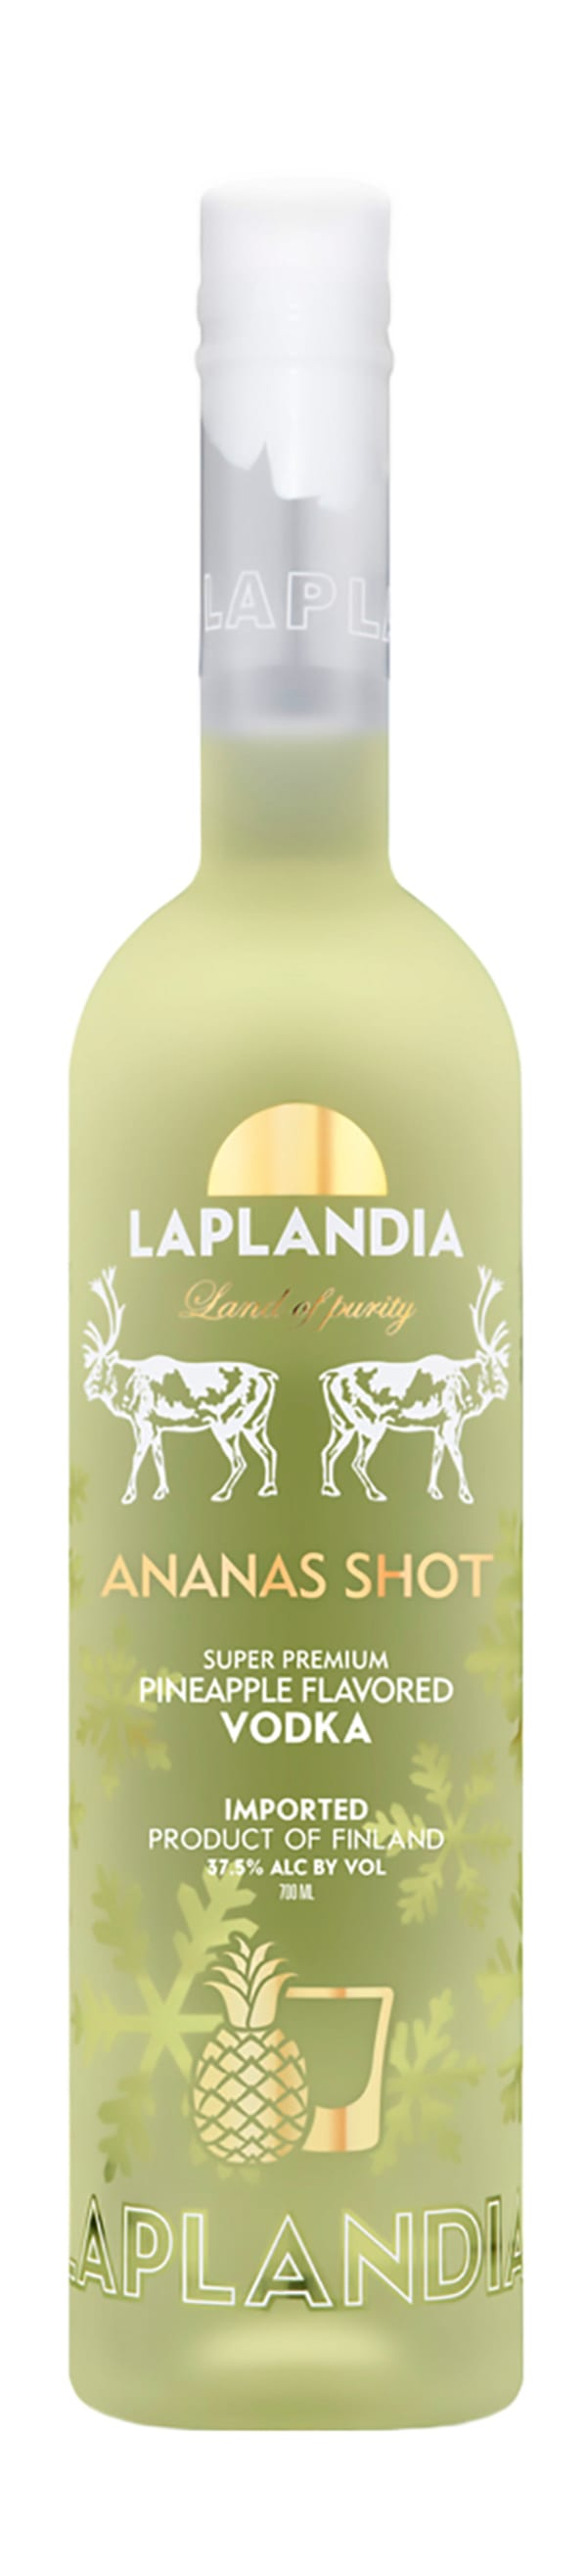 Laplandia Ananas Shot Vodka